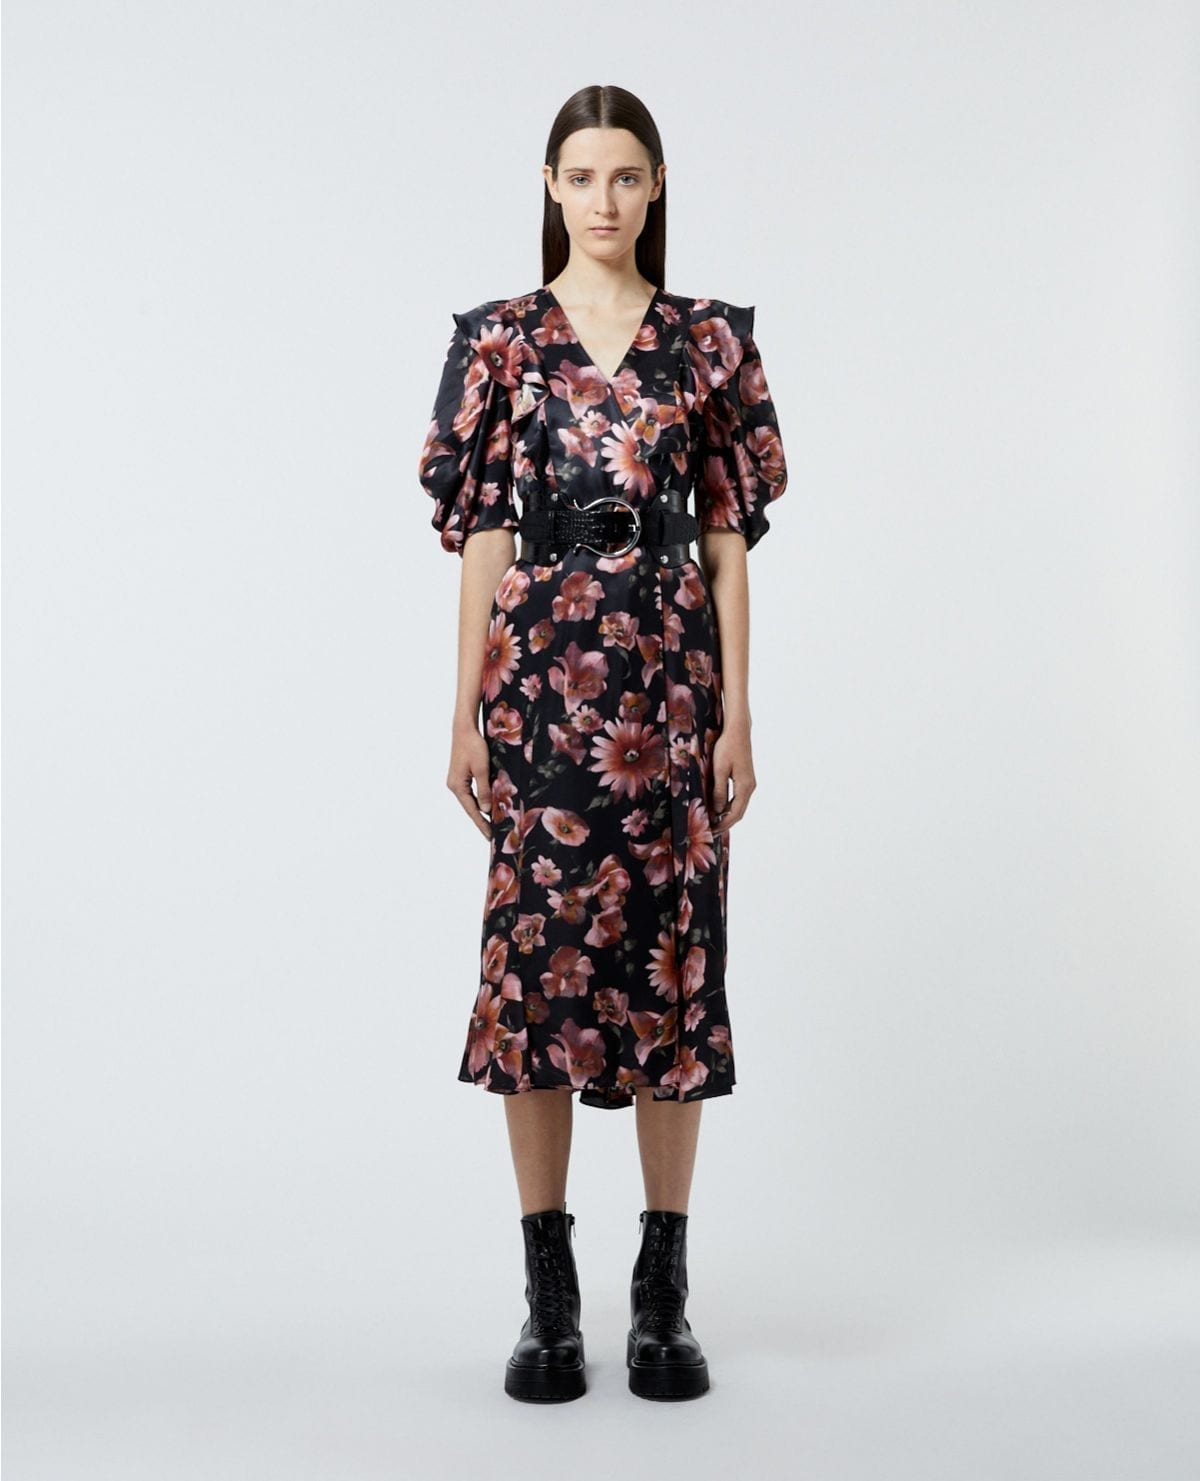 THE KOOPLES Black Printed Wrap Dress